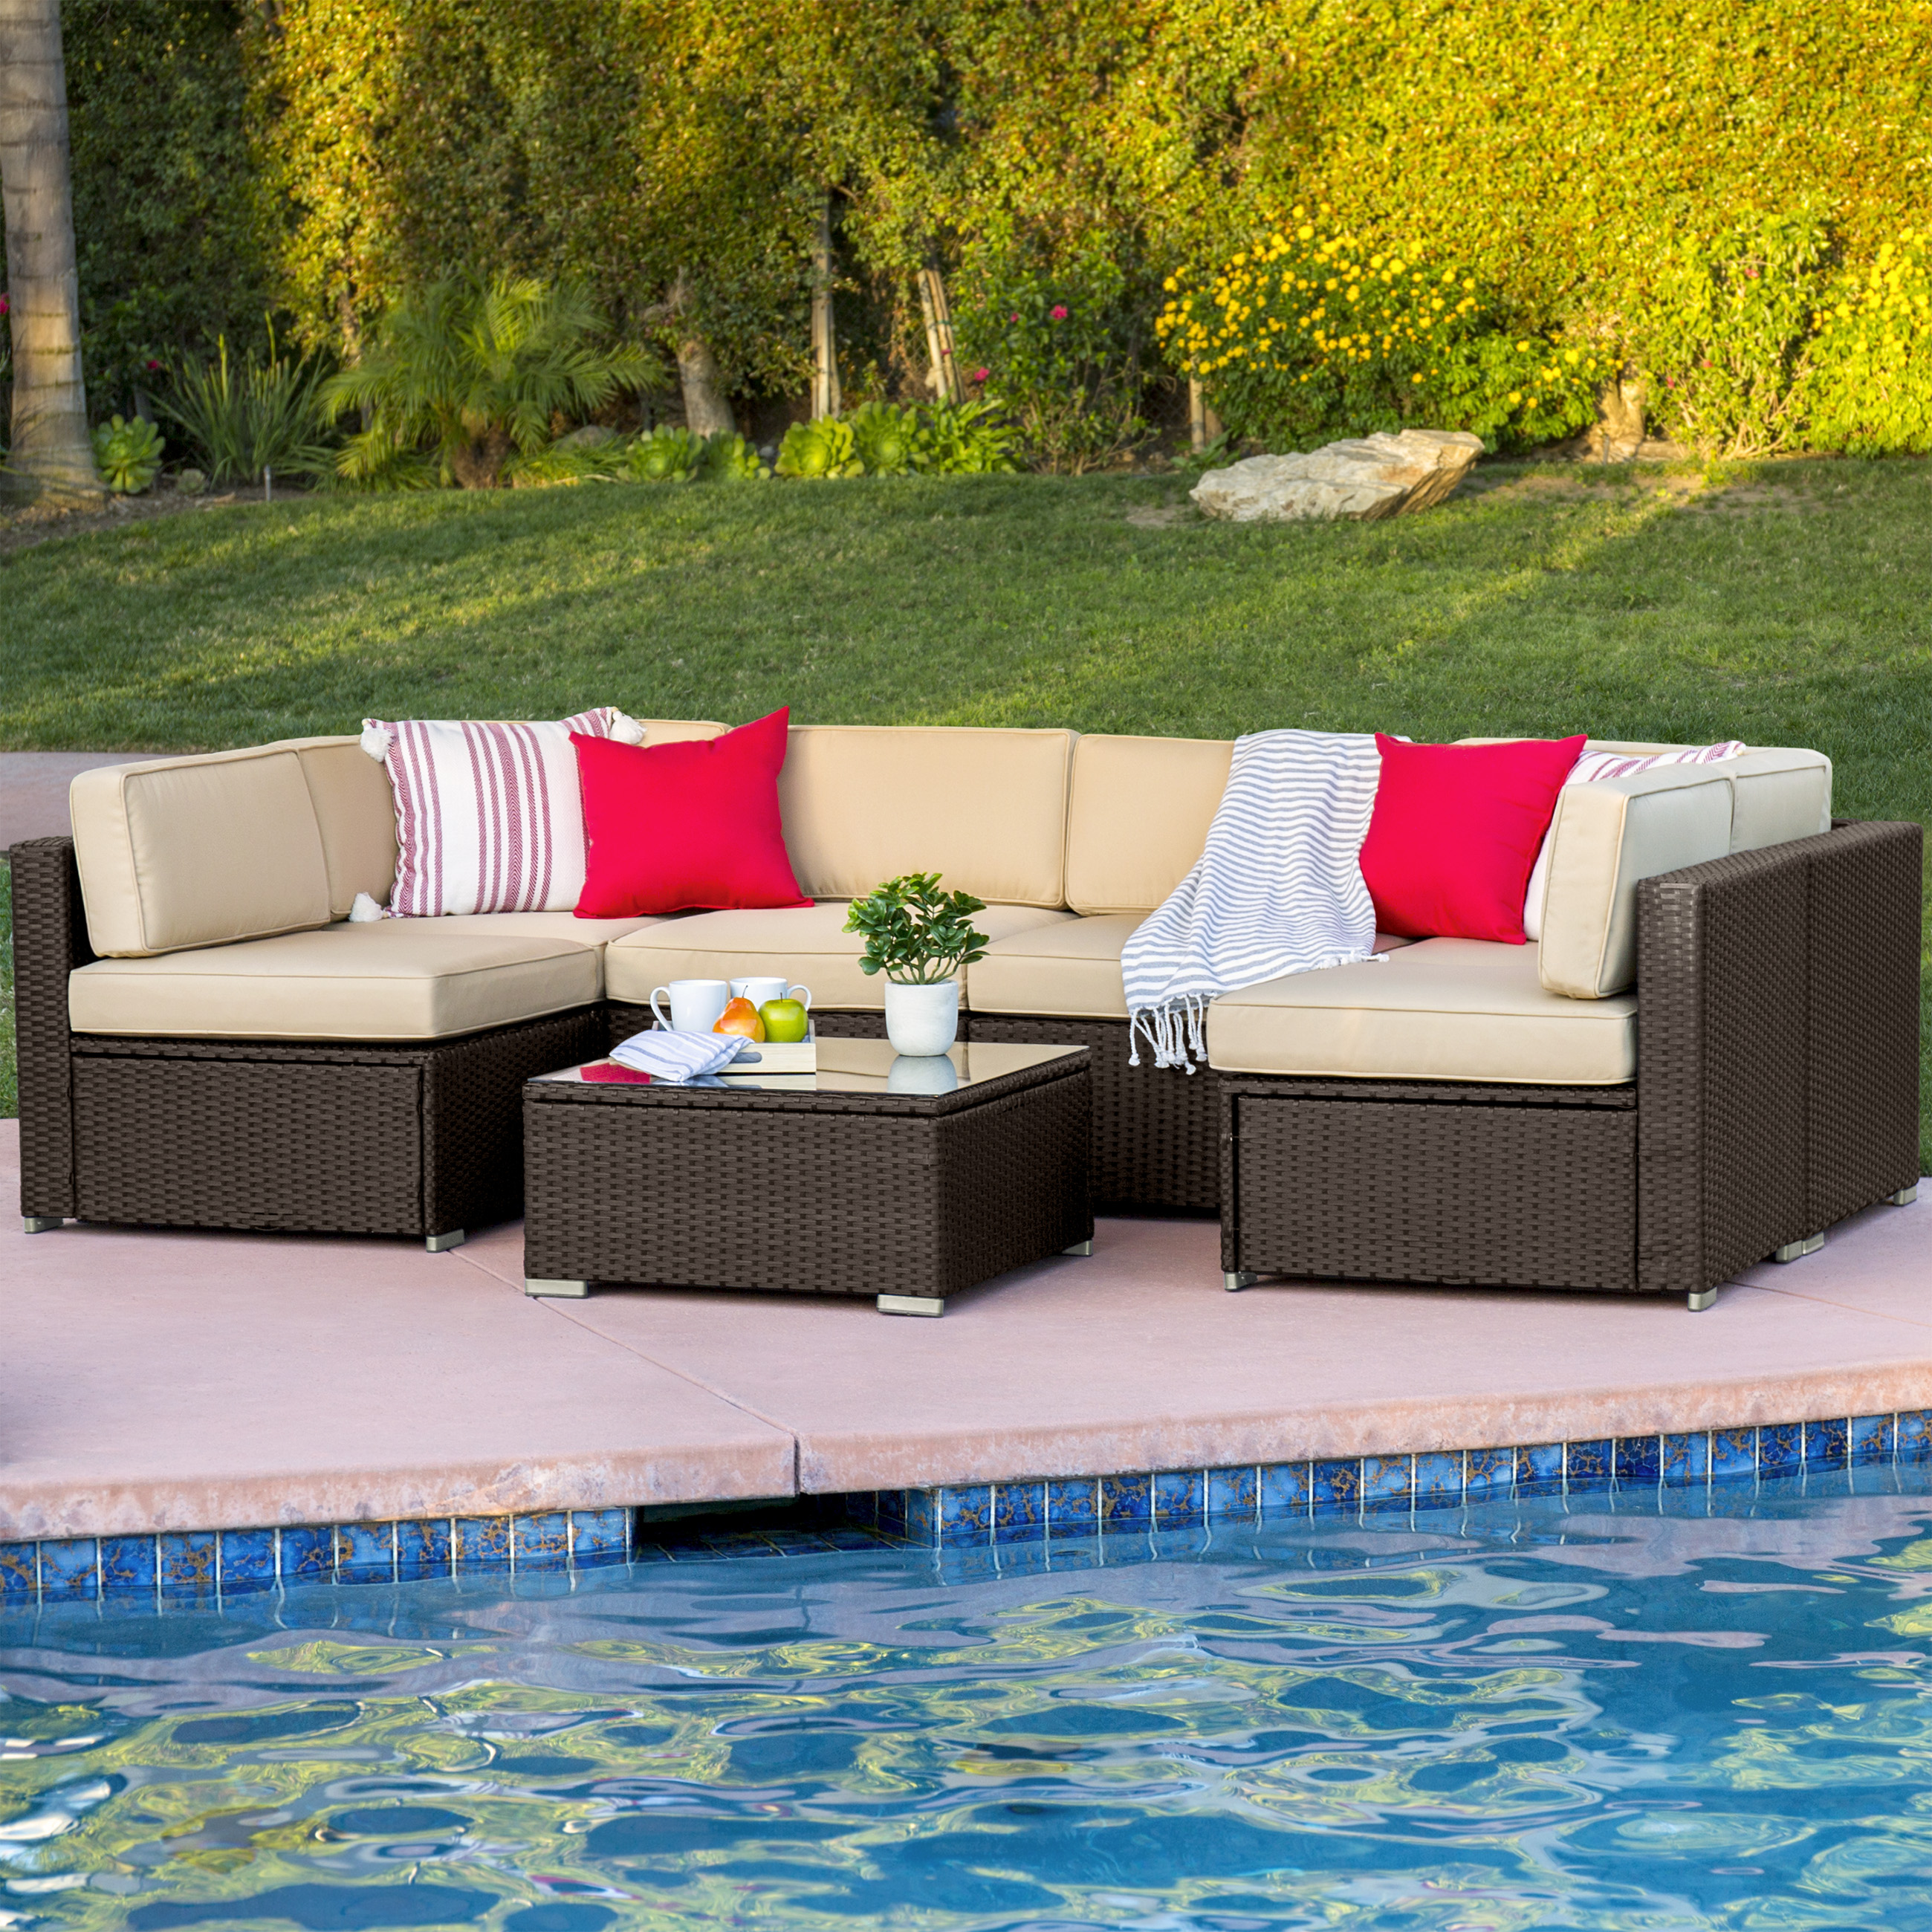 Best Choice Products 7pc Outdoor Patio Garden Furniture Wicker Rattan Sofa Set Sectional... by